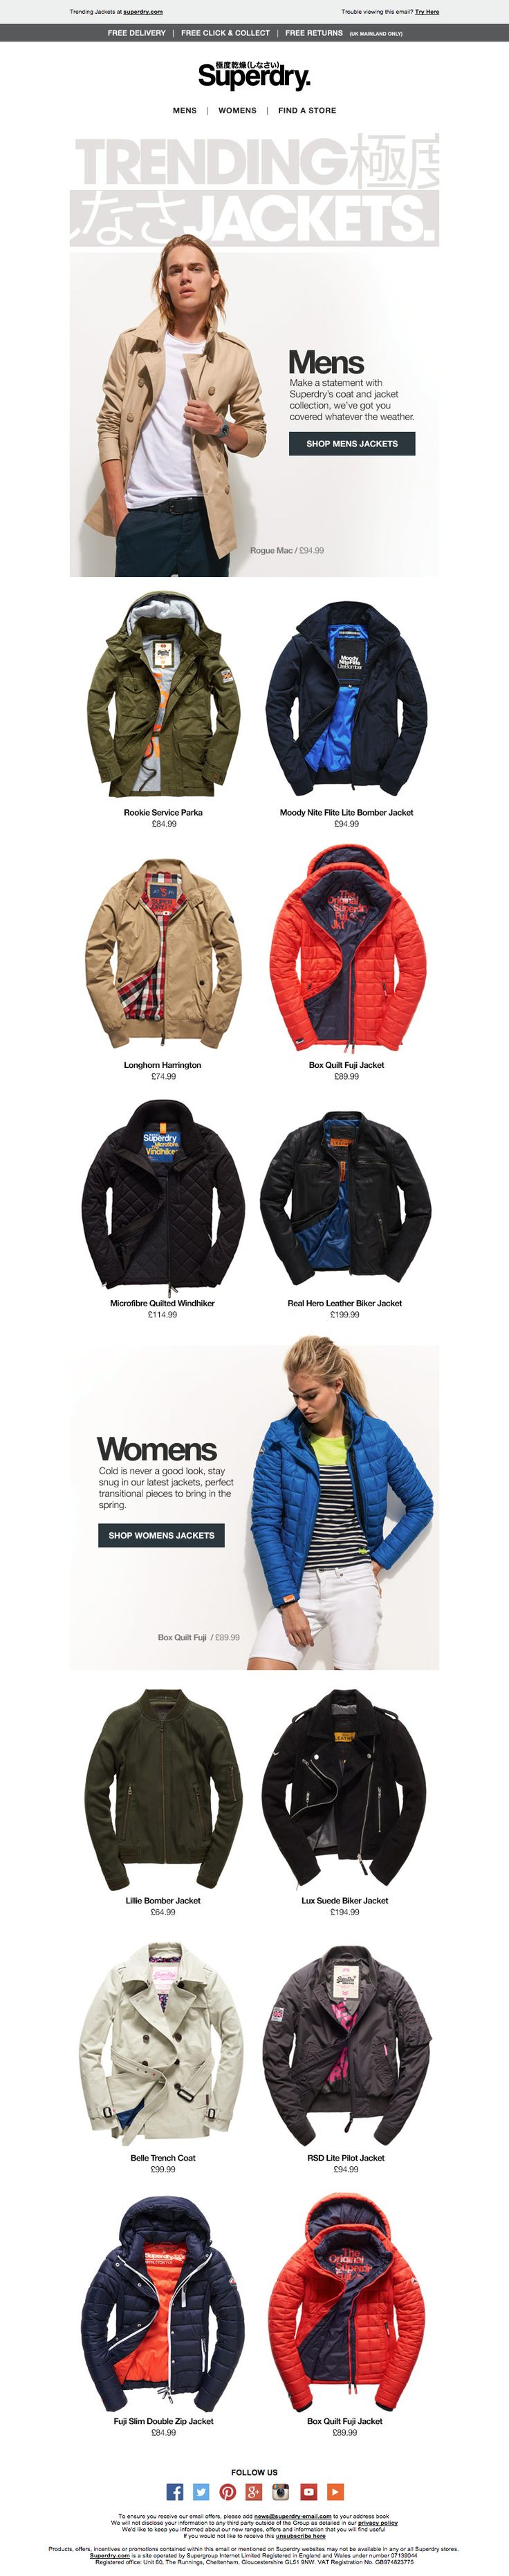 Superdry Trending Jackets Email / Newsletter Design